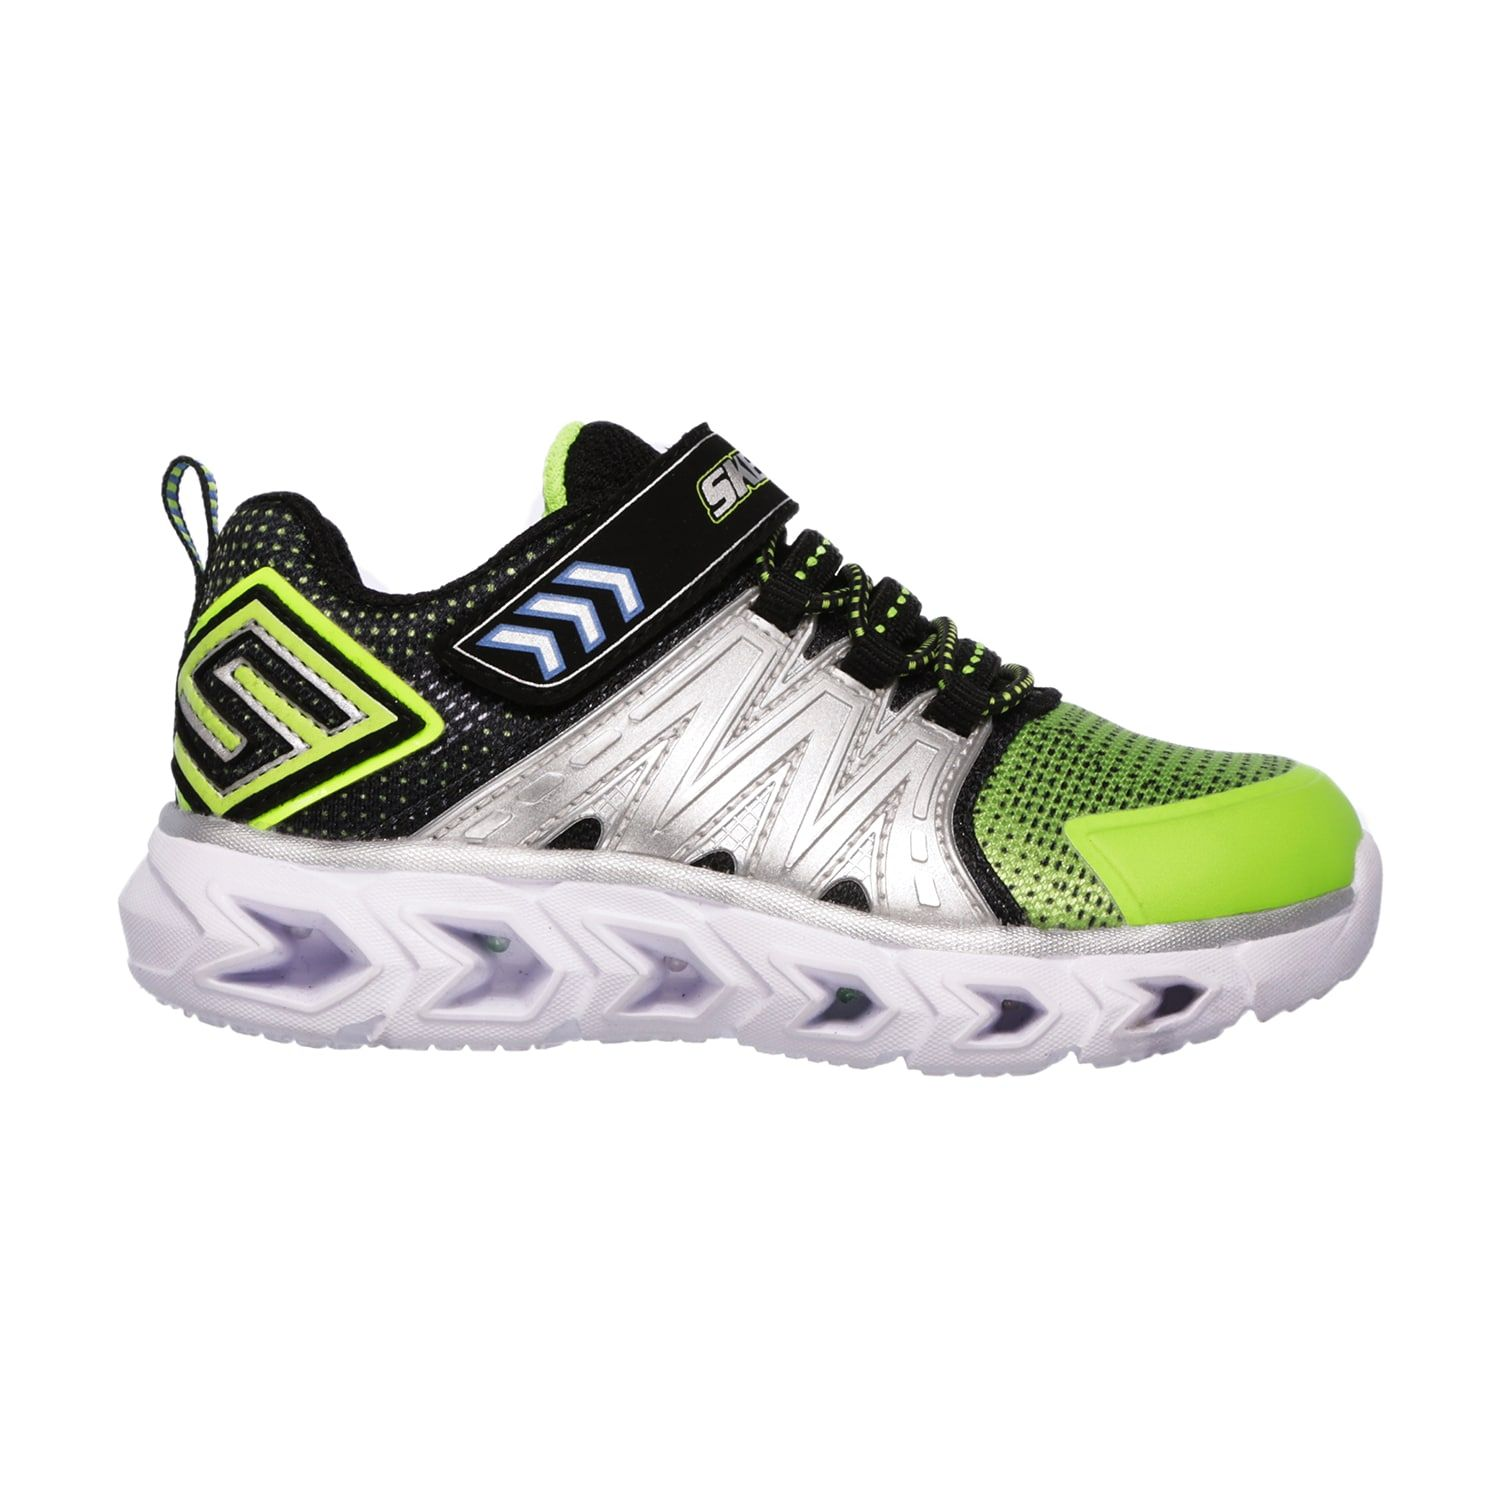 a5f0a3902799 Skechers S Lights Hypno Flash 2.0 Toddler Boys  Light Up Shoes in ...